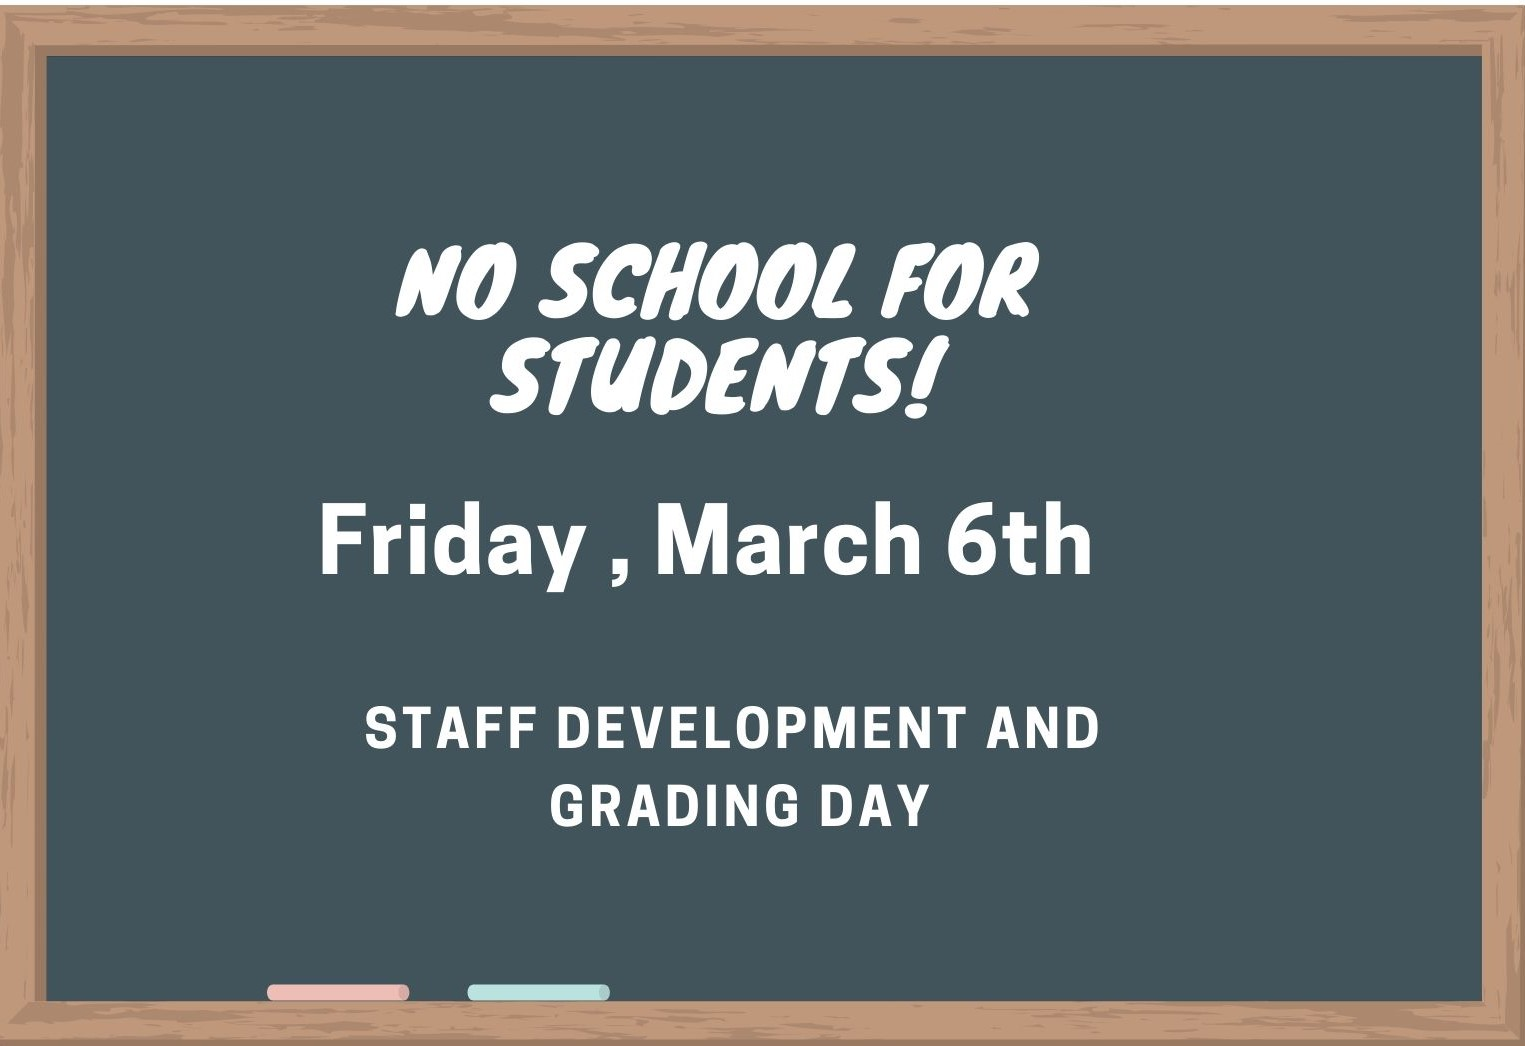 No School for Students on Friday March 6th